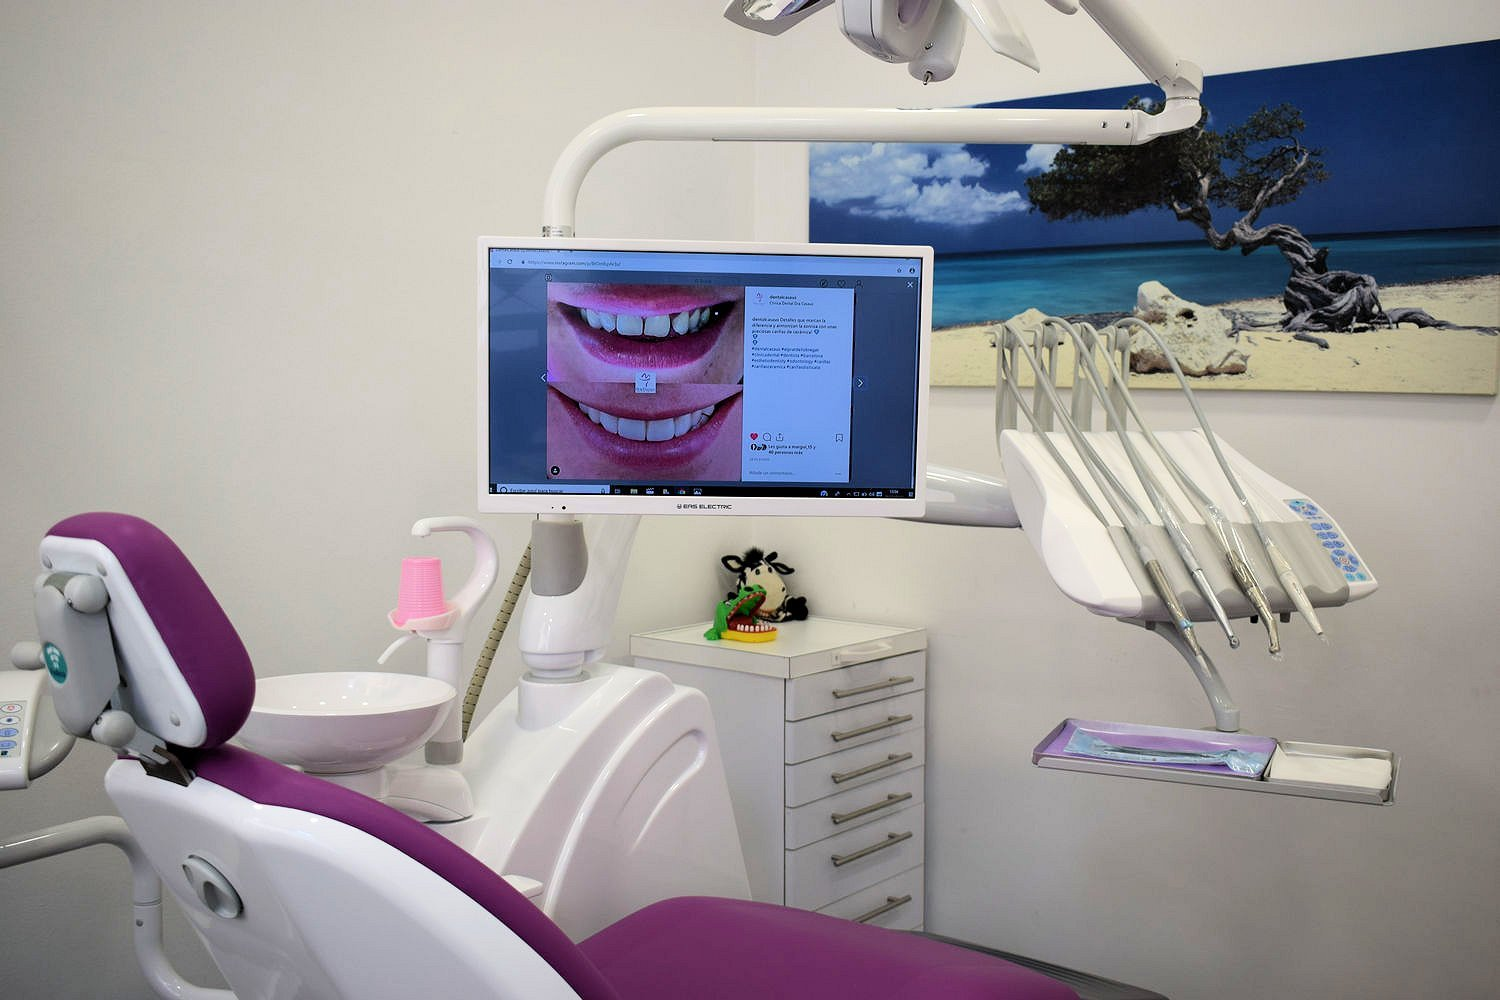 Centre dental dra Casaus 16